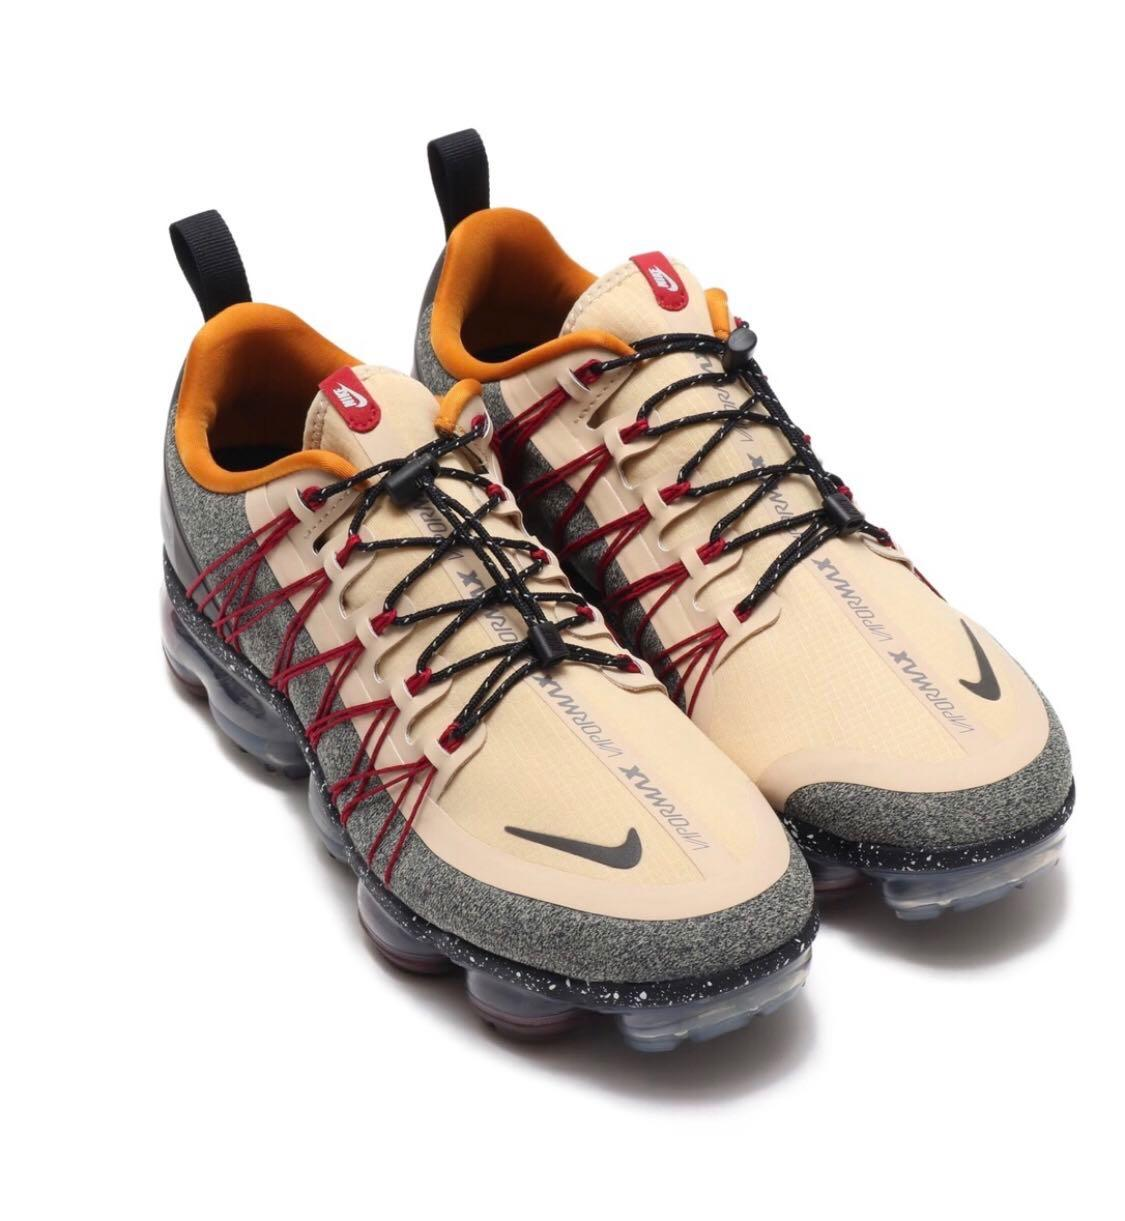 sale retailer cf343 b4df1 Nike Air Vapormax Utility - price reduced, cheap, must sell ...